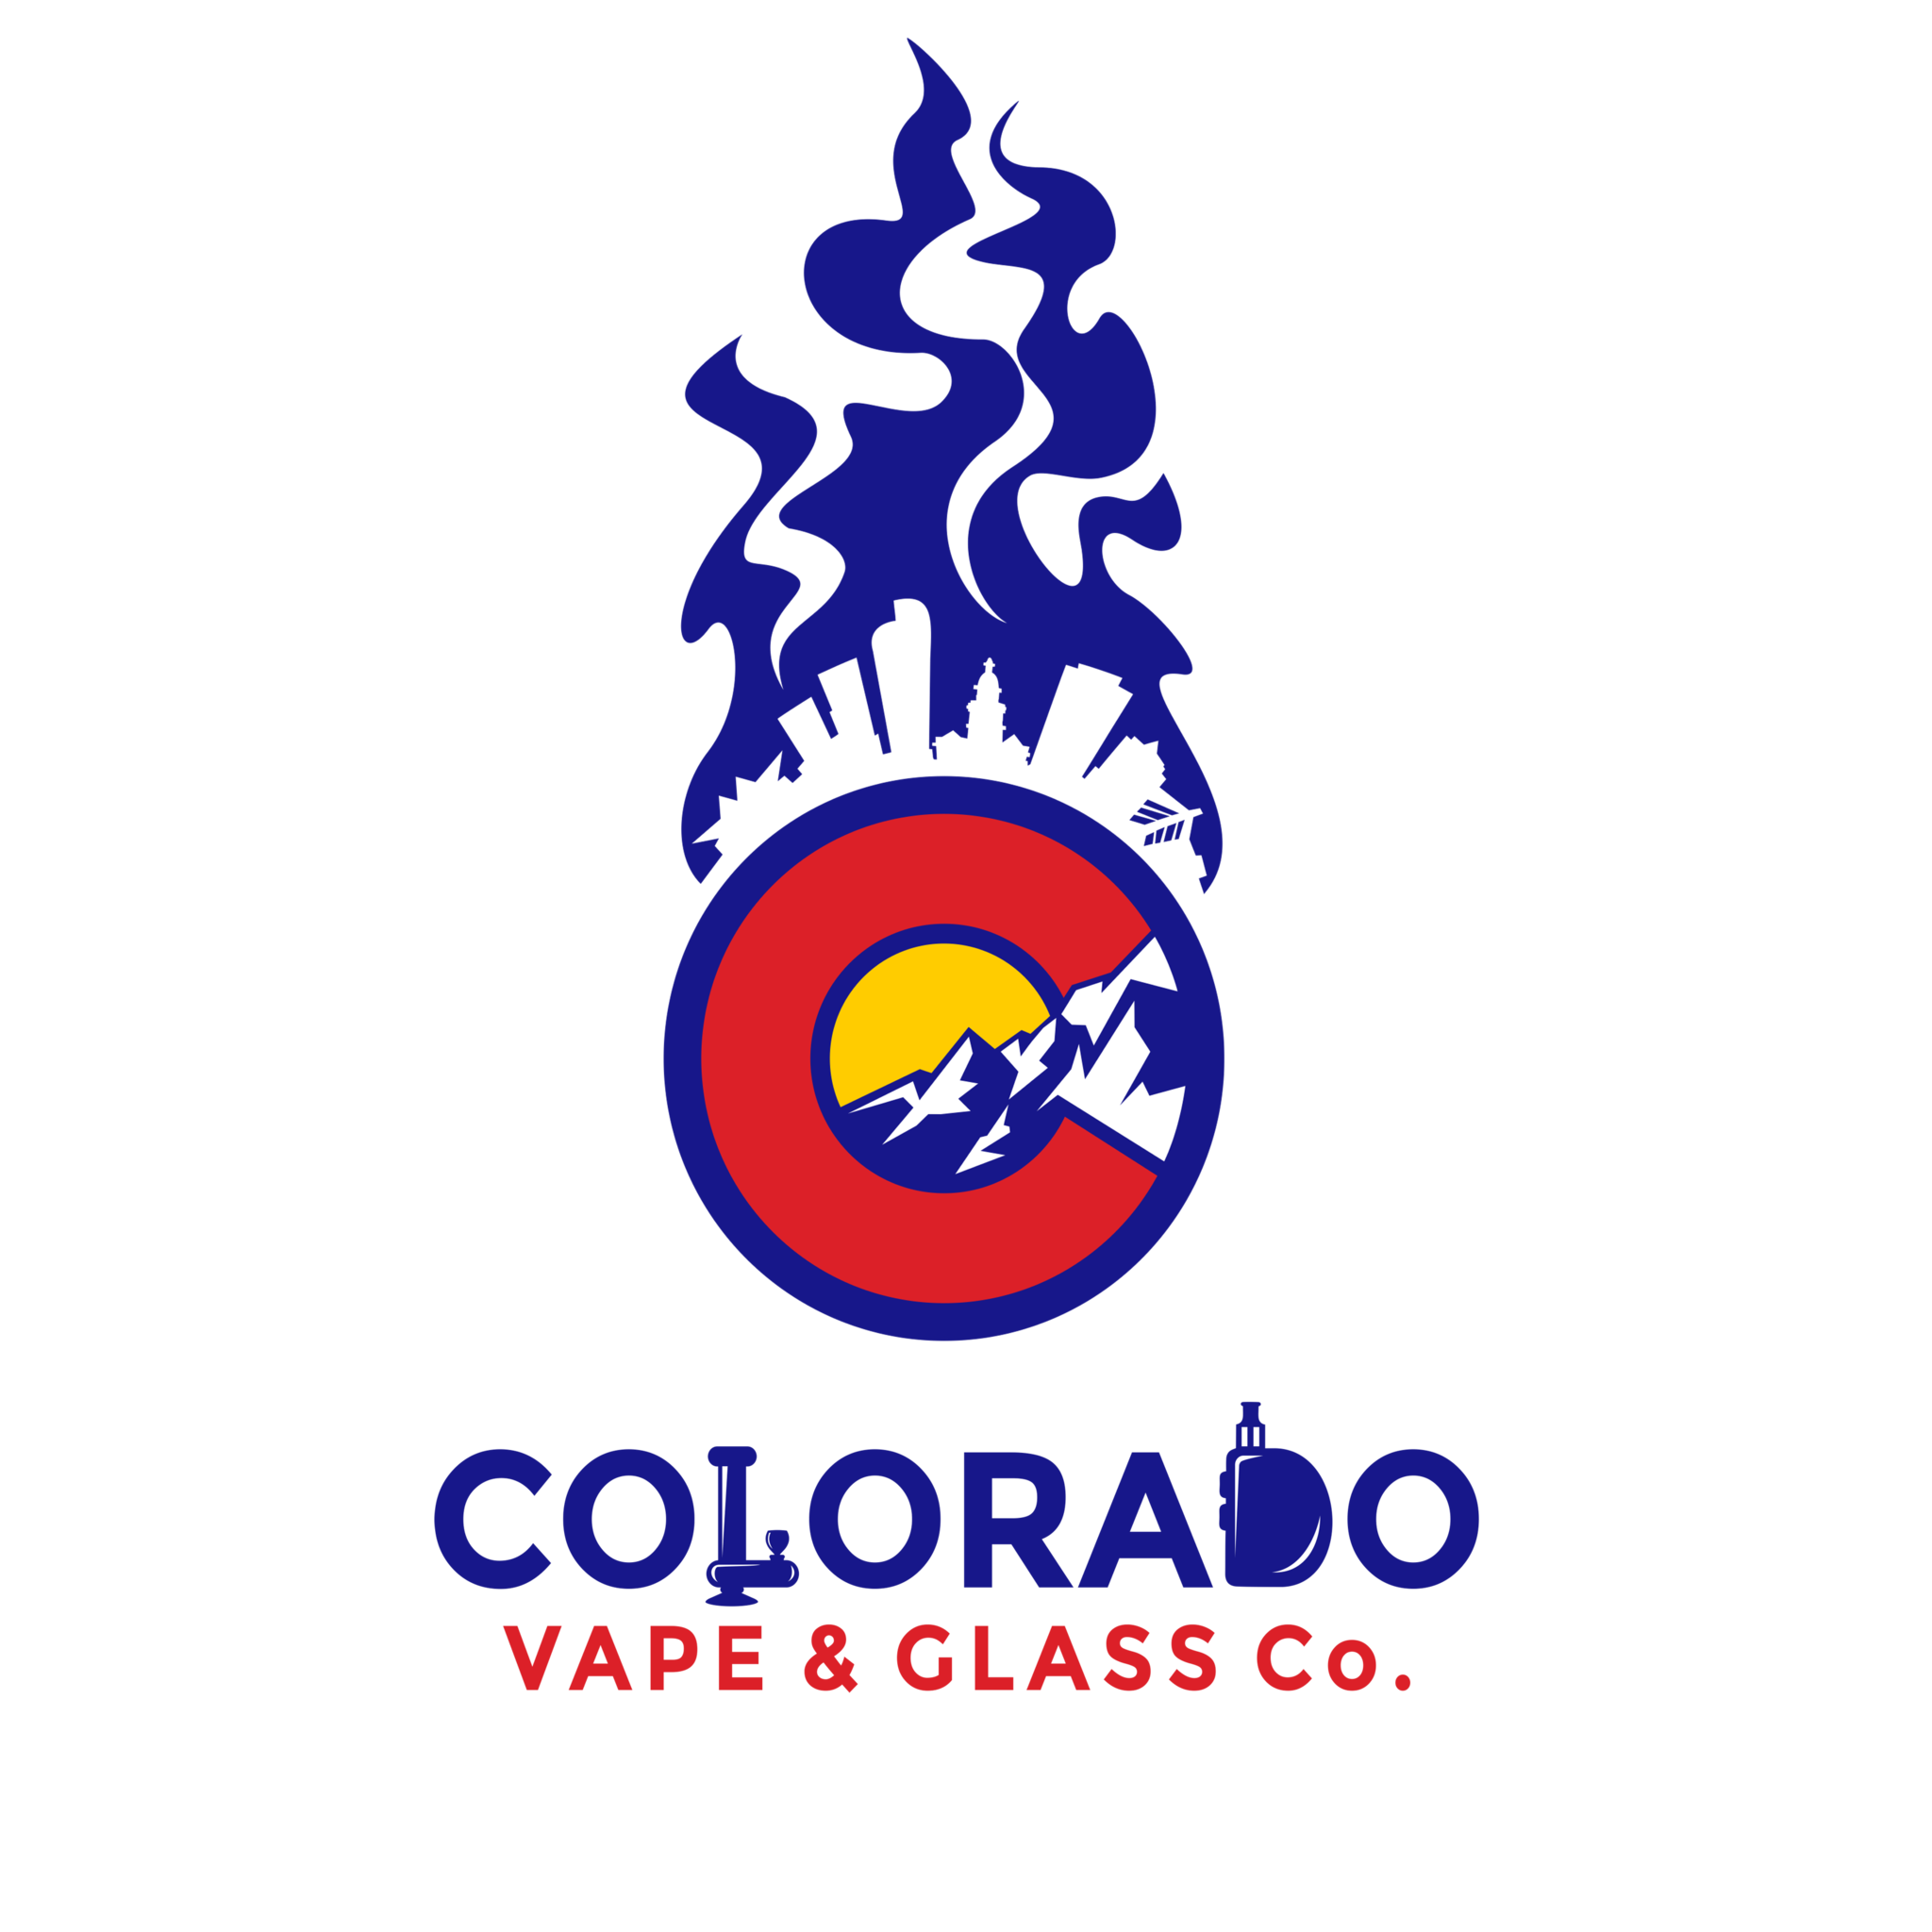 Colorado Vape & Glass Co.